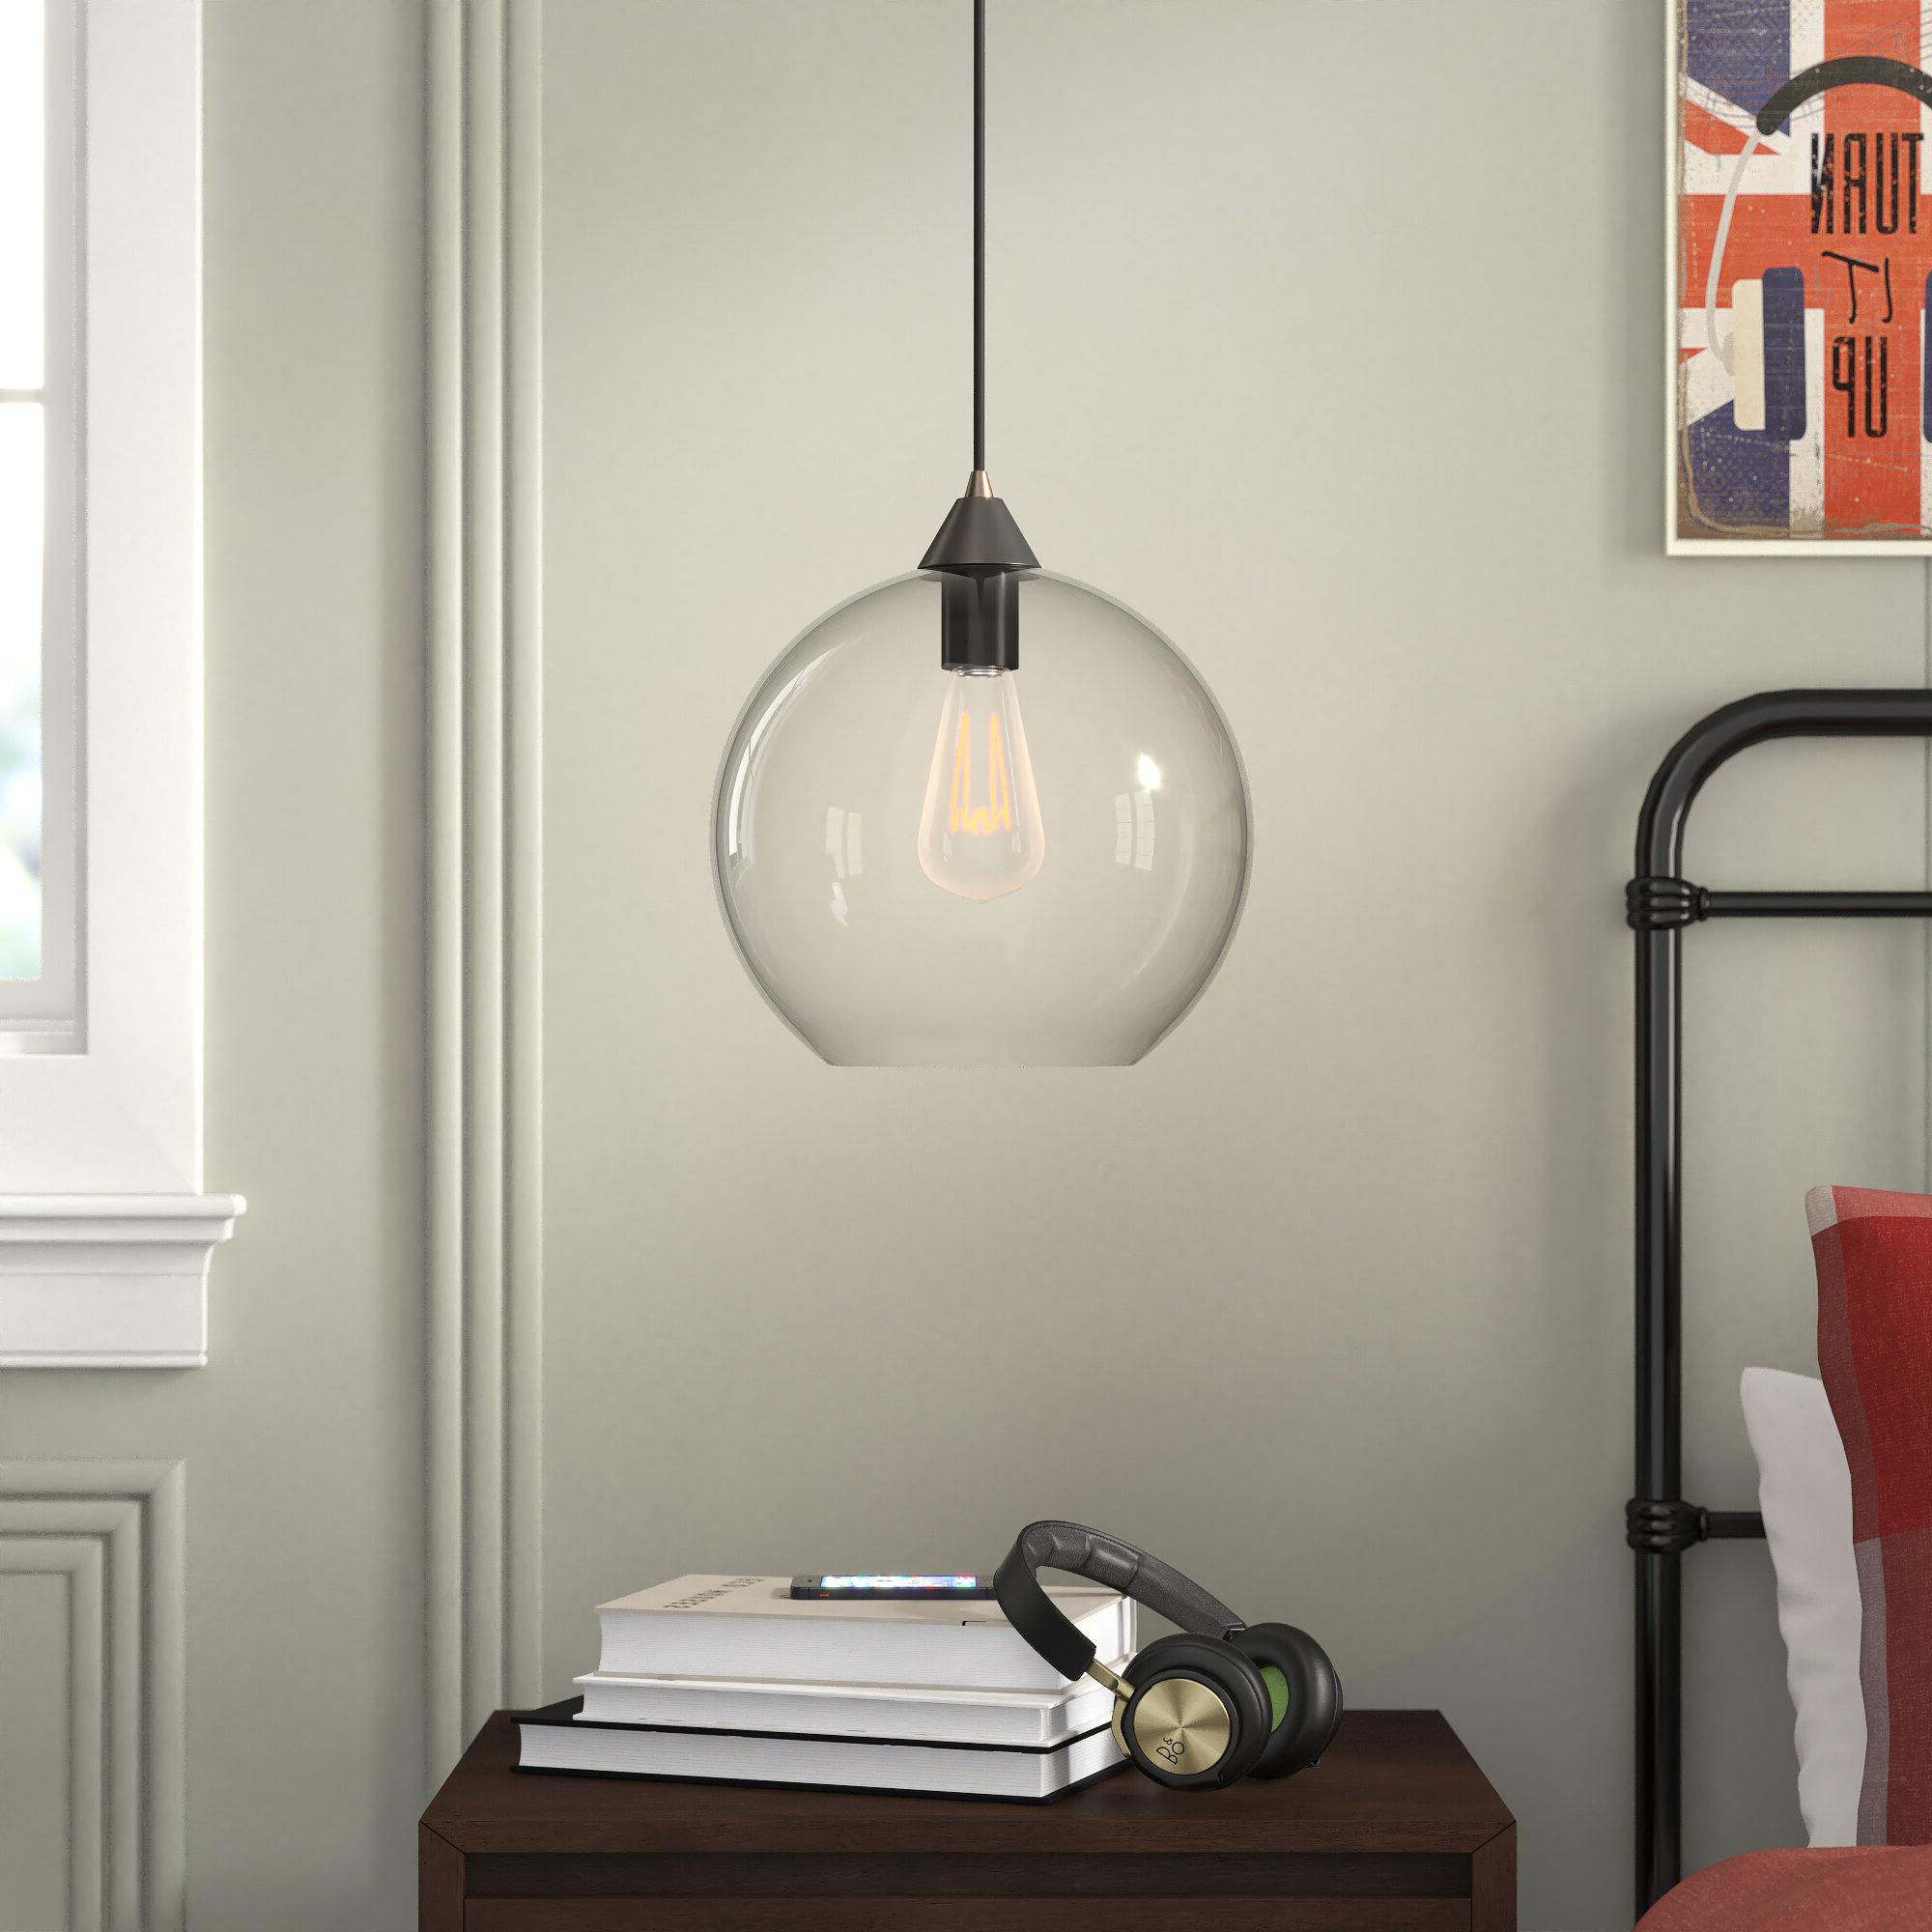 Bundy 1-Light Single Globe Pendants in Favorite Alana 1-Light Single Globe Pendant